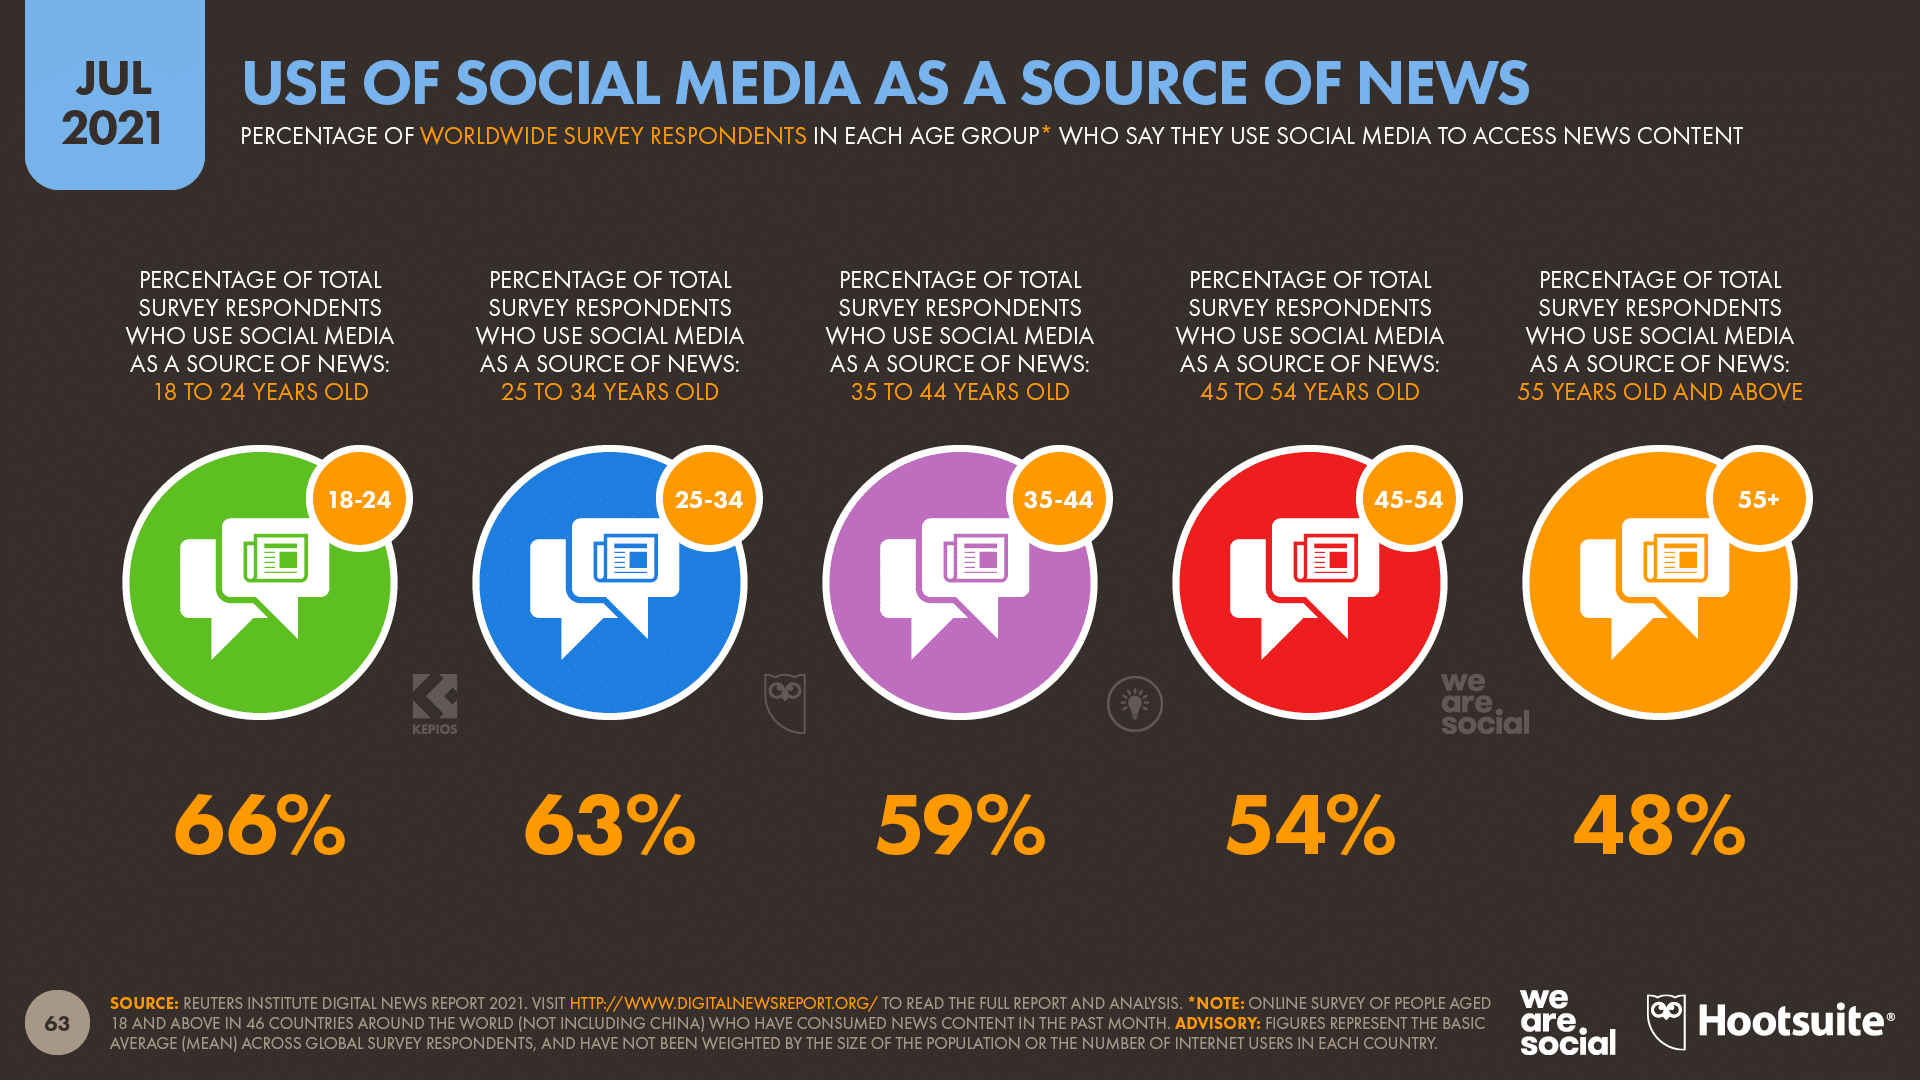 chart showing use of social media as a source of news as of July 2021